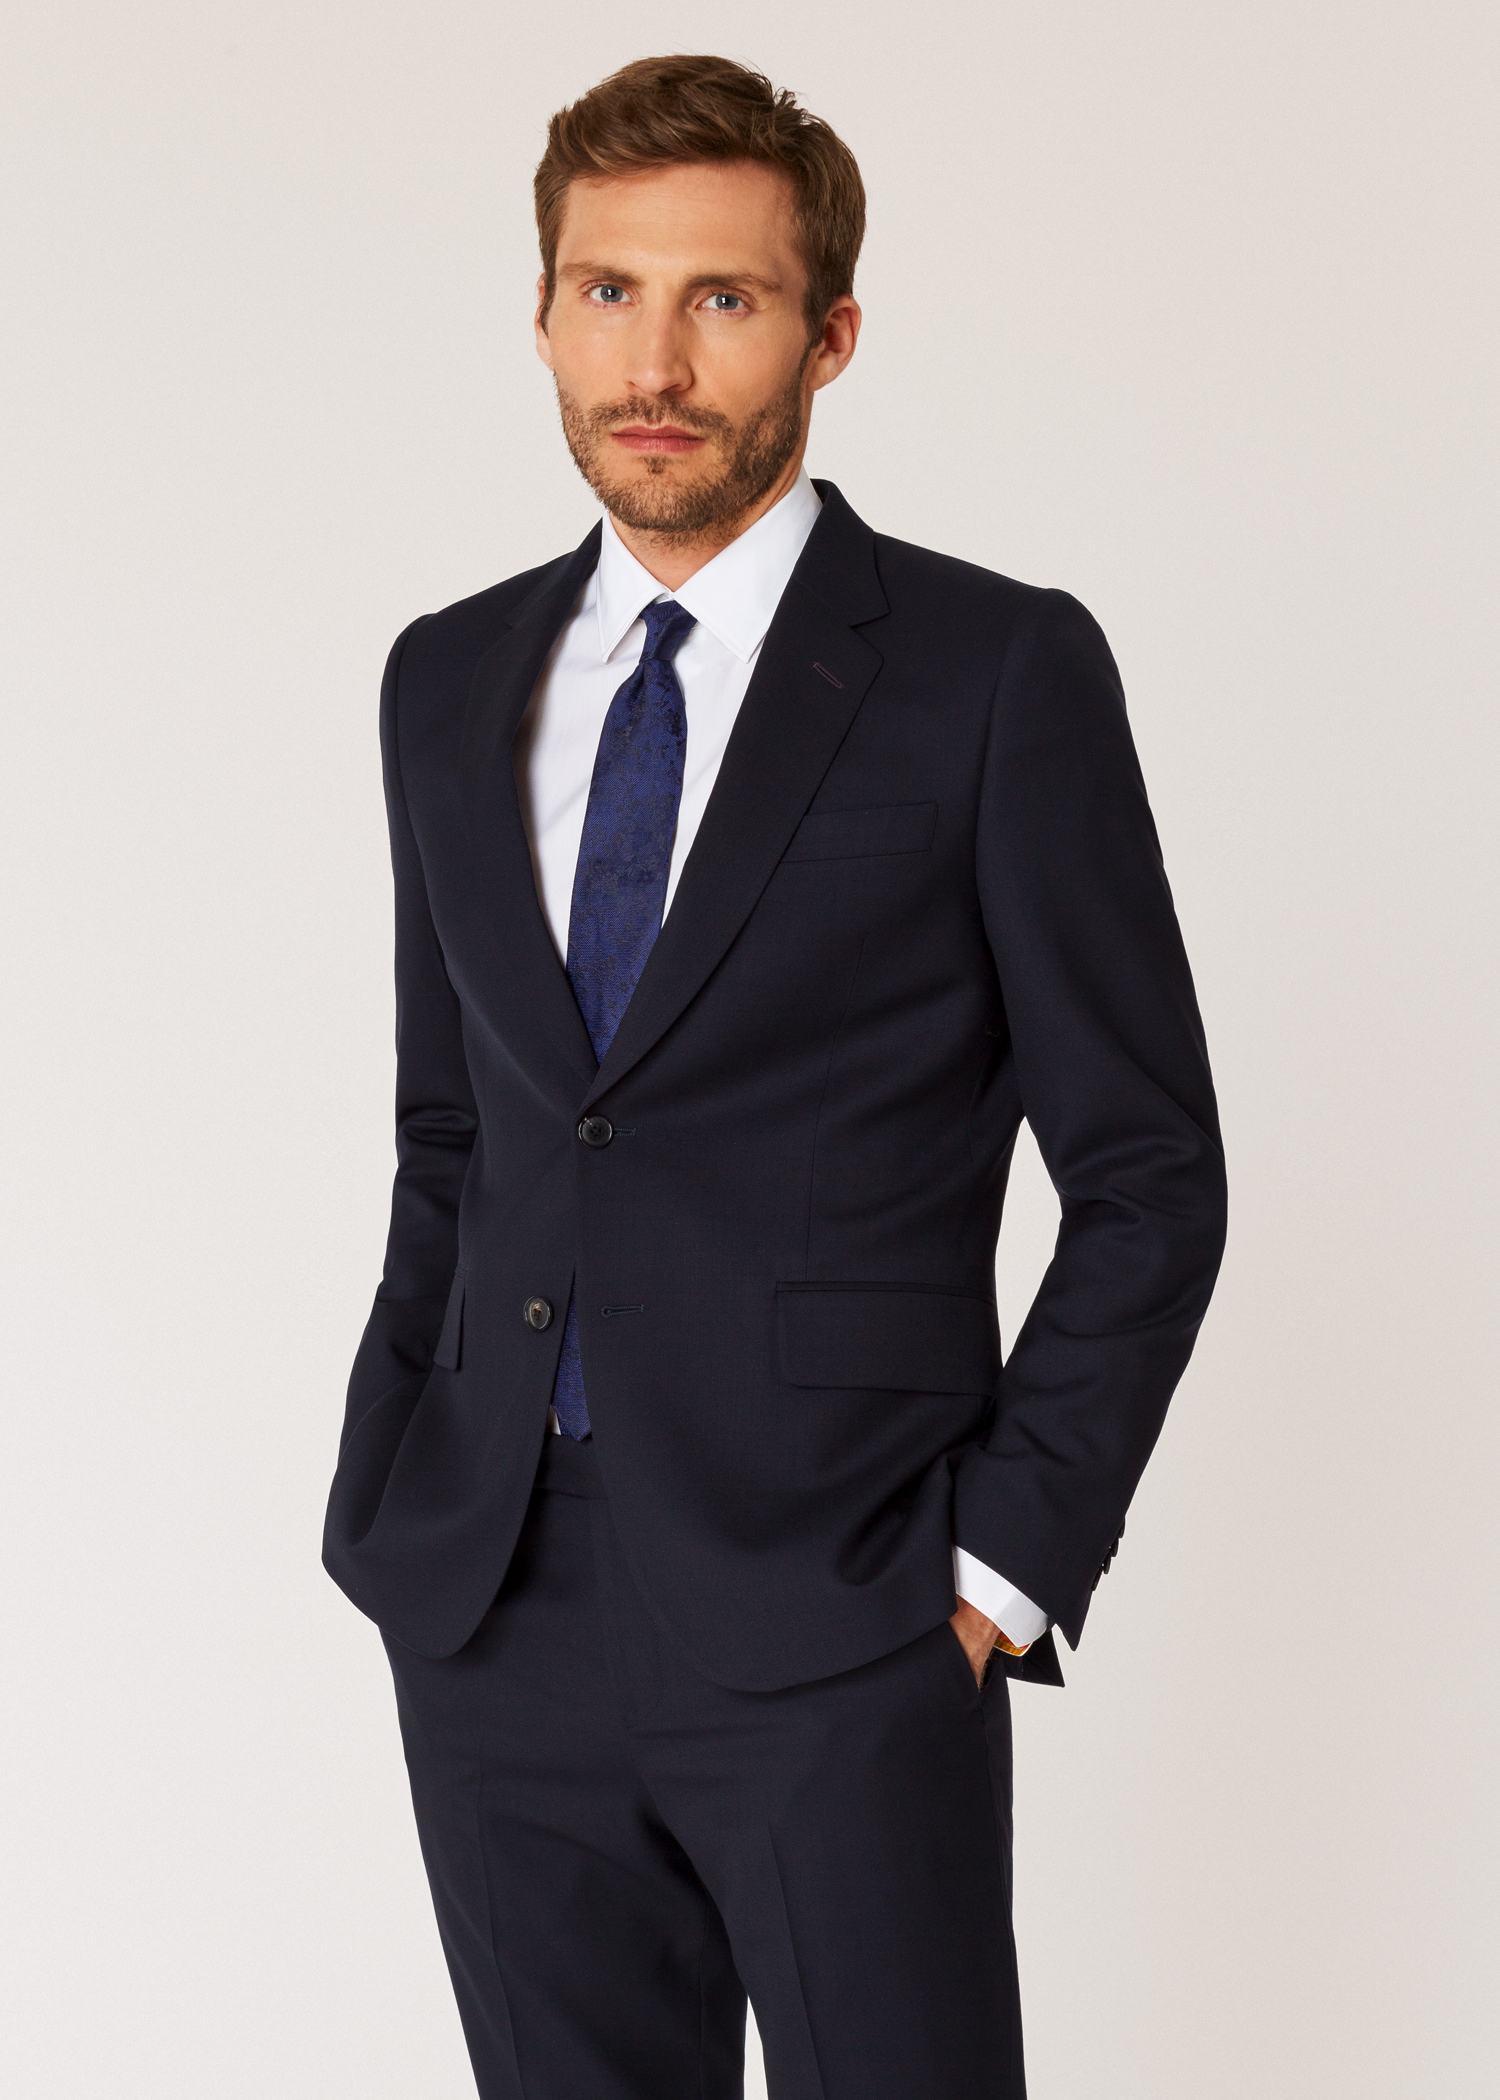 c4daa00b56 The Soho - Men's Tailored-Fit Navy Wool 'A Suit To Travel In' - Paul ...